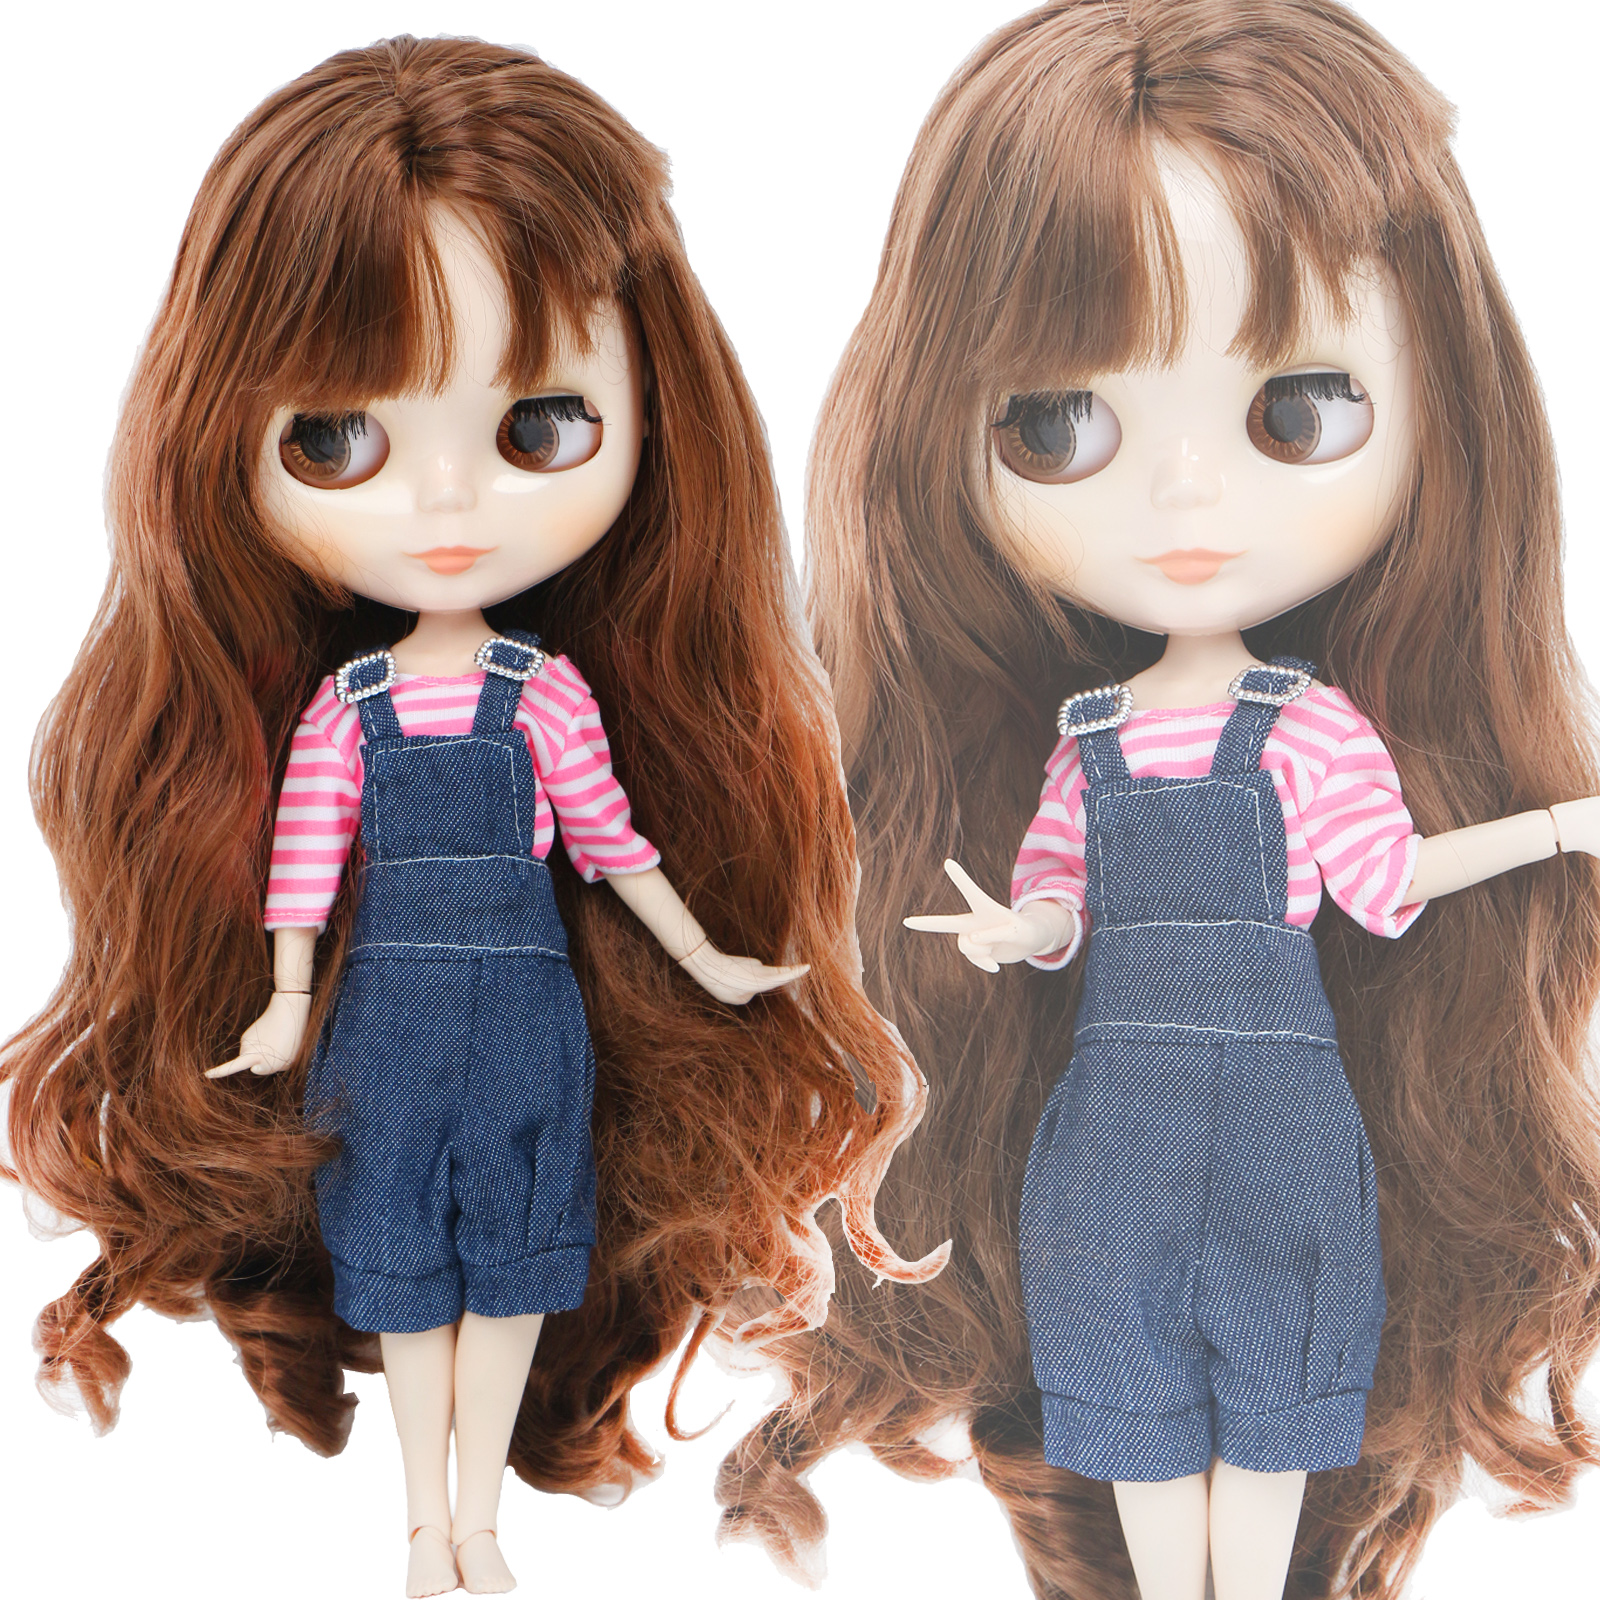 Handmade Fashion Outfit For Blythe Doll 11.5'' Blue Pink Blouse Overalls Pants Daily Wear Doll Clothes Accessories Toy